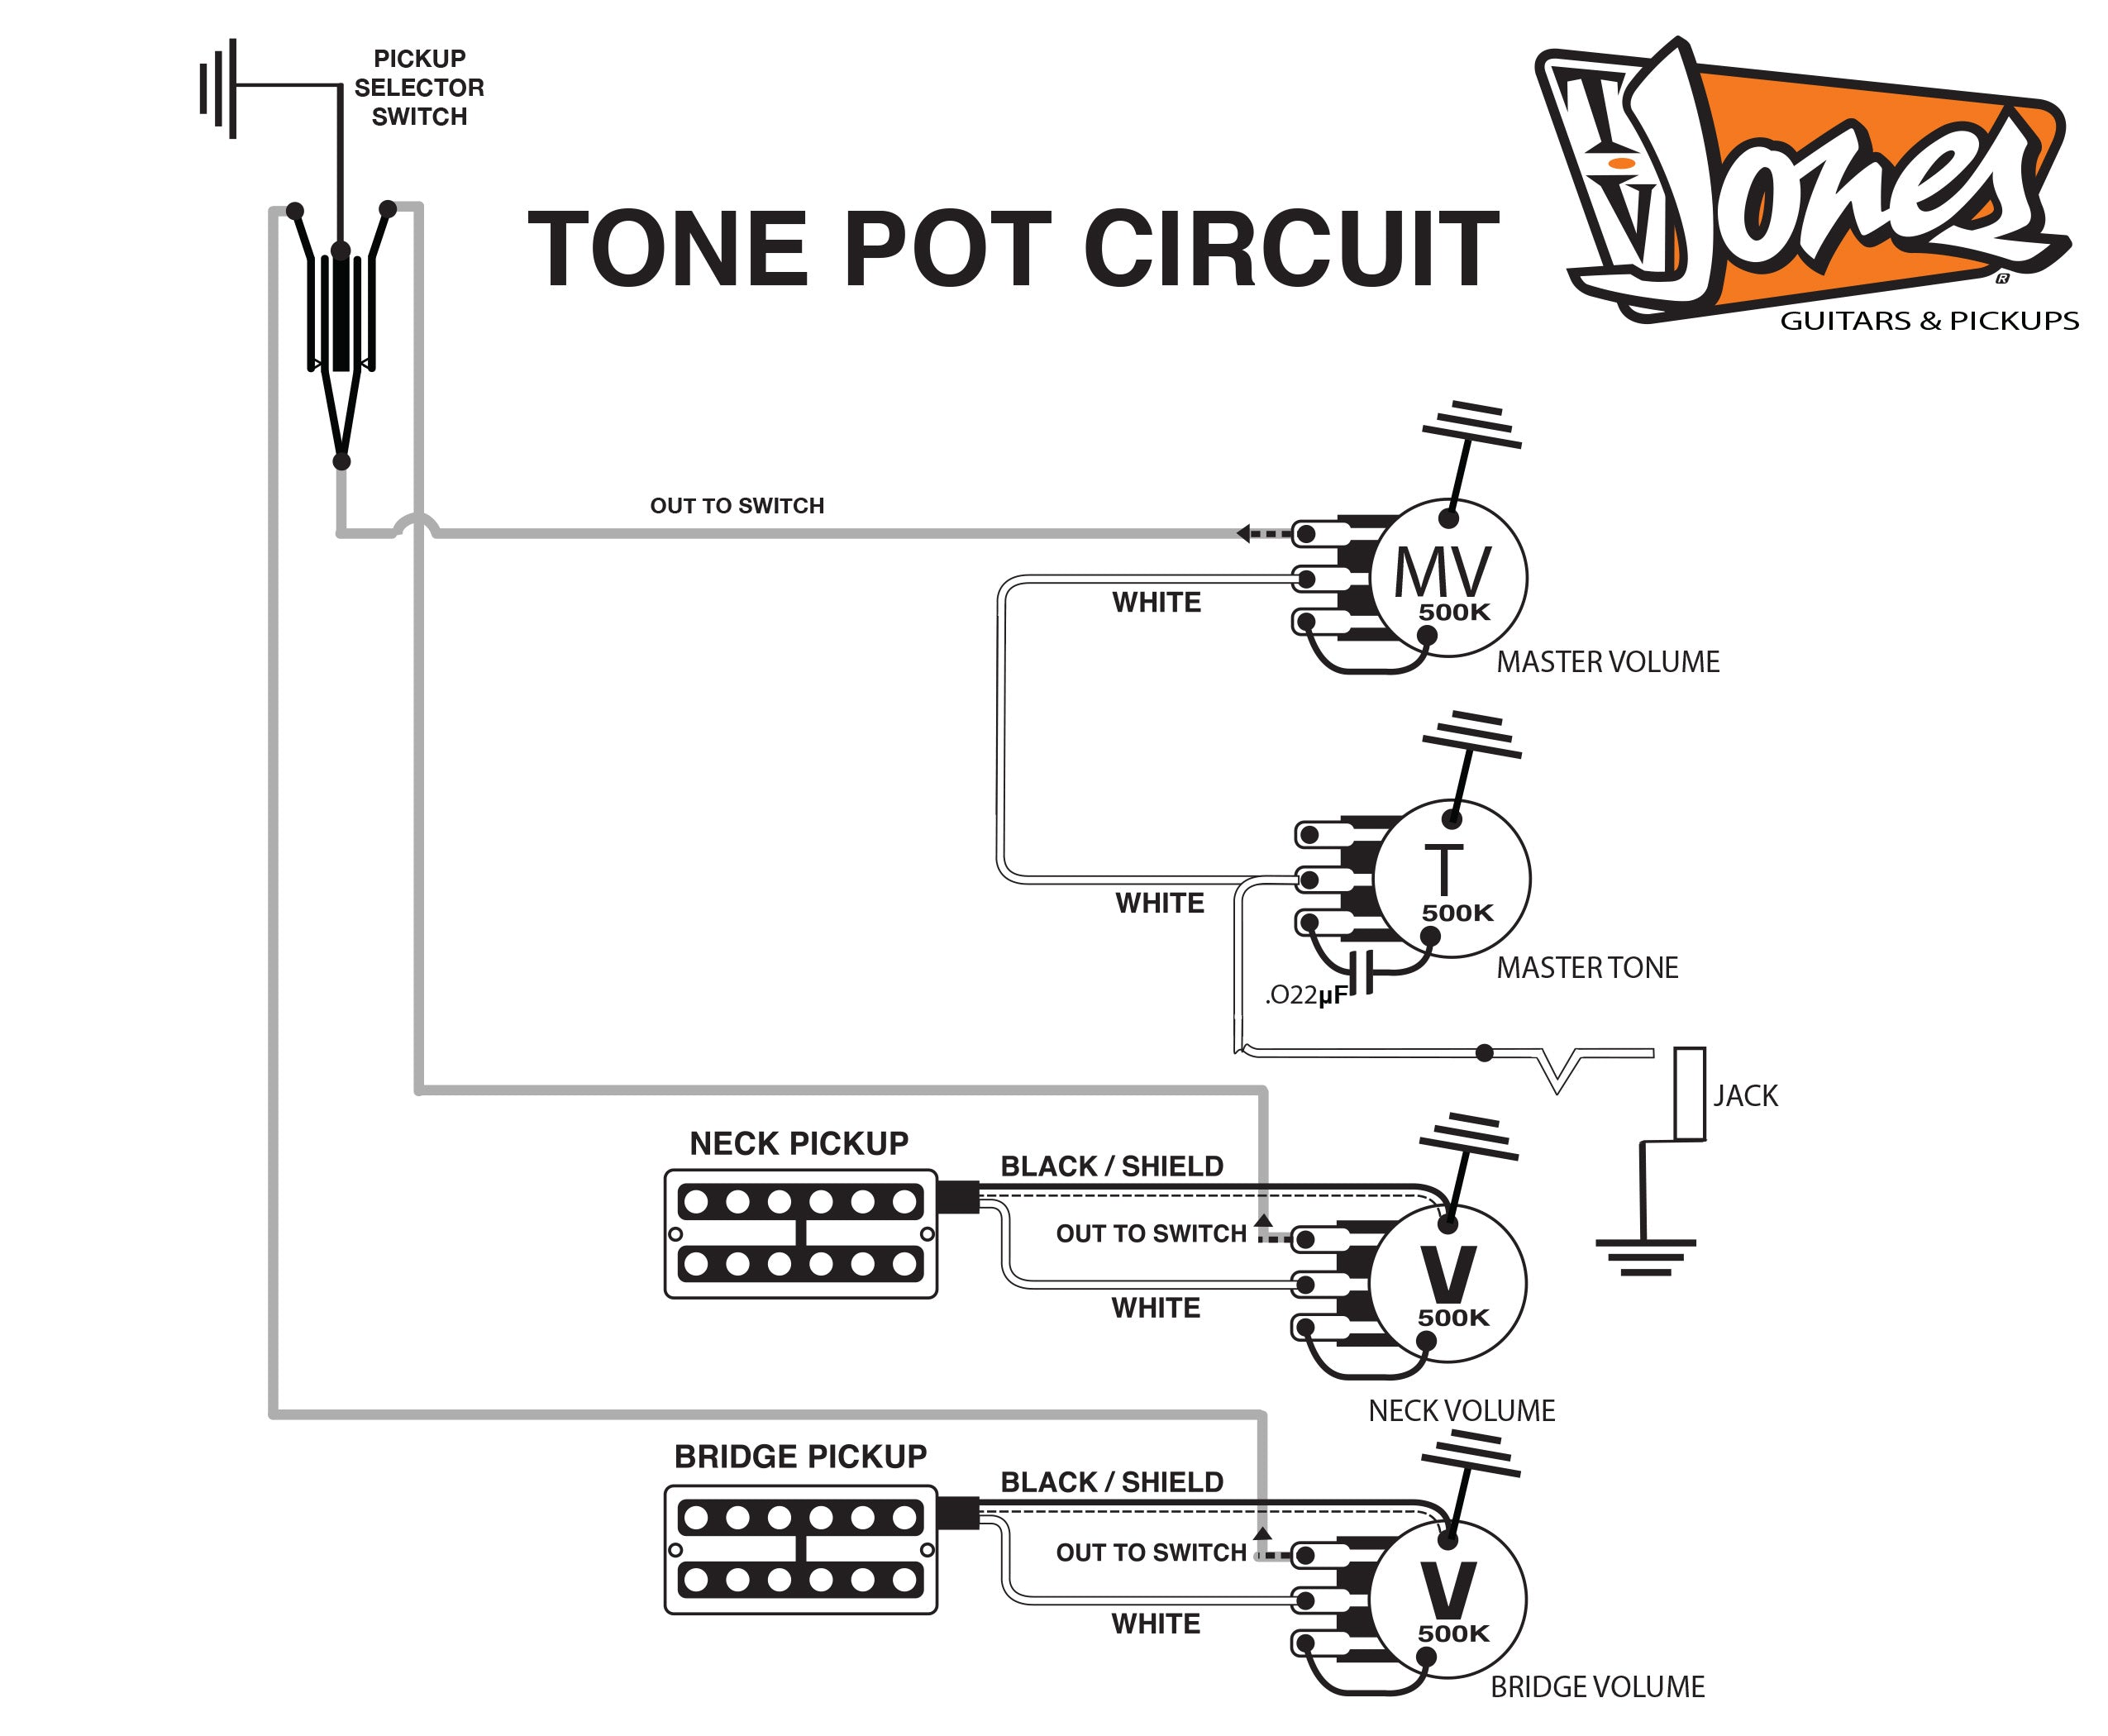 tv jones product dimensions rickenbacker wiring-diagram gretsch pickup wiring diagram #1